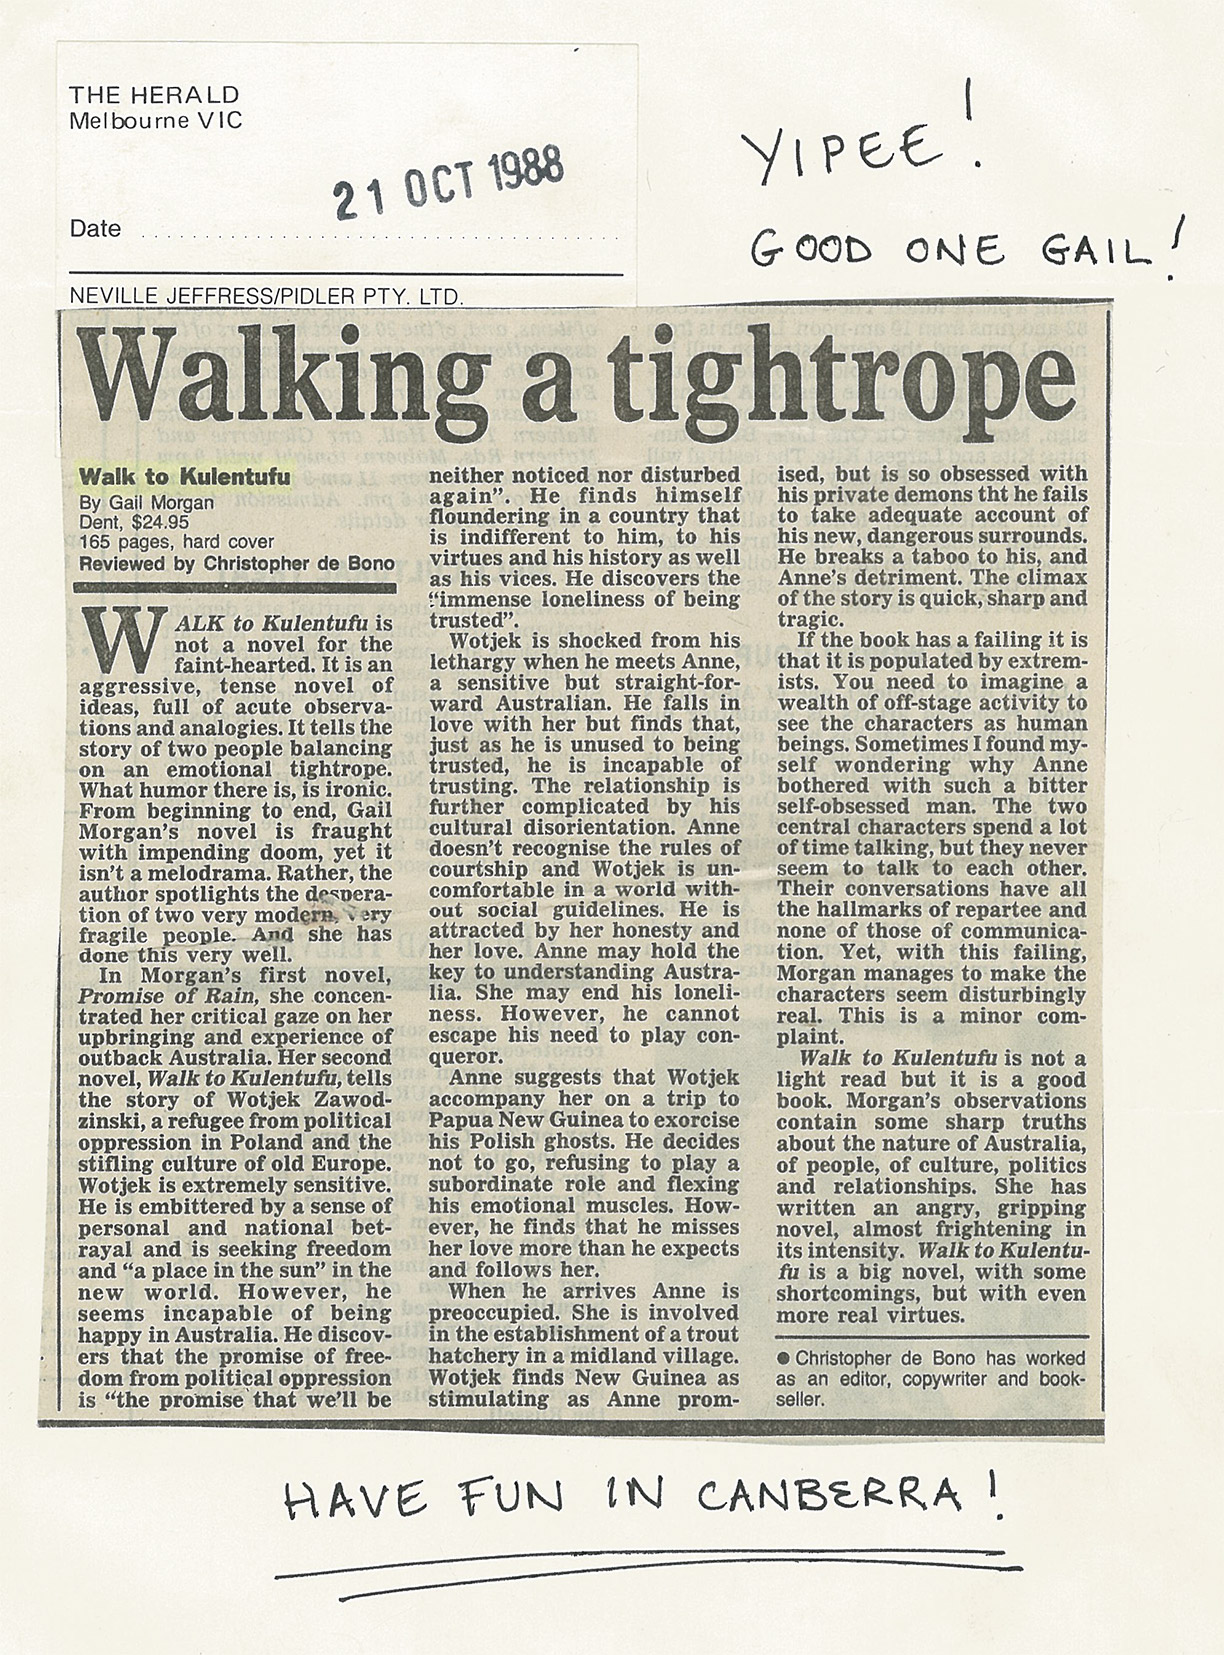 Walking a tightrope